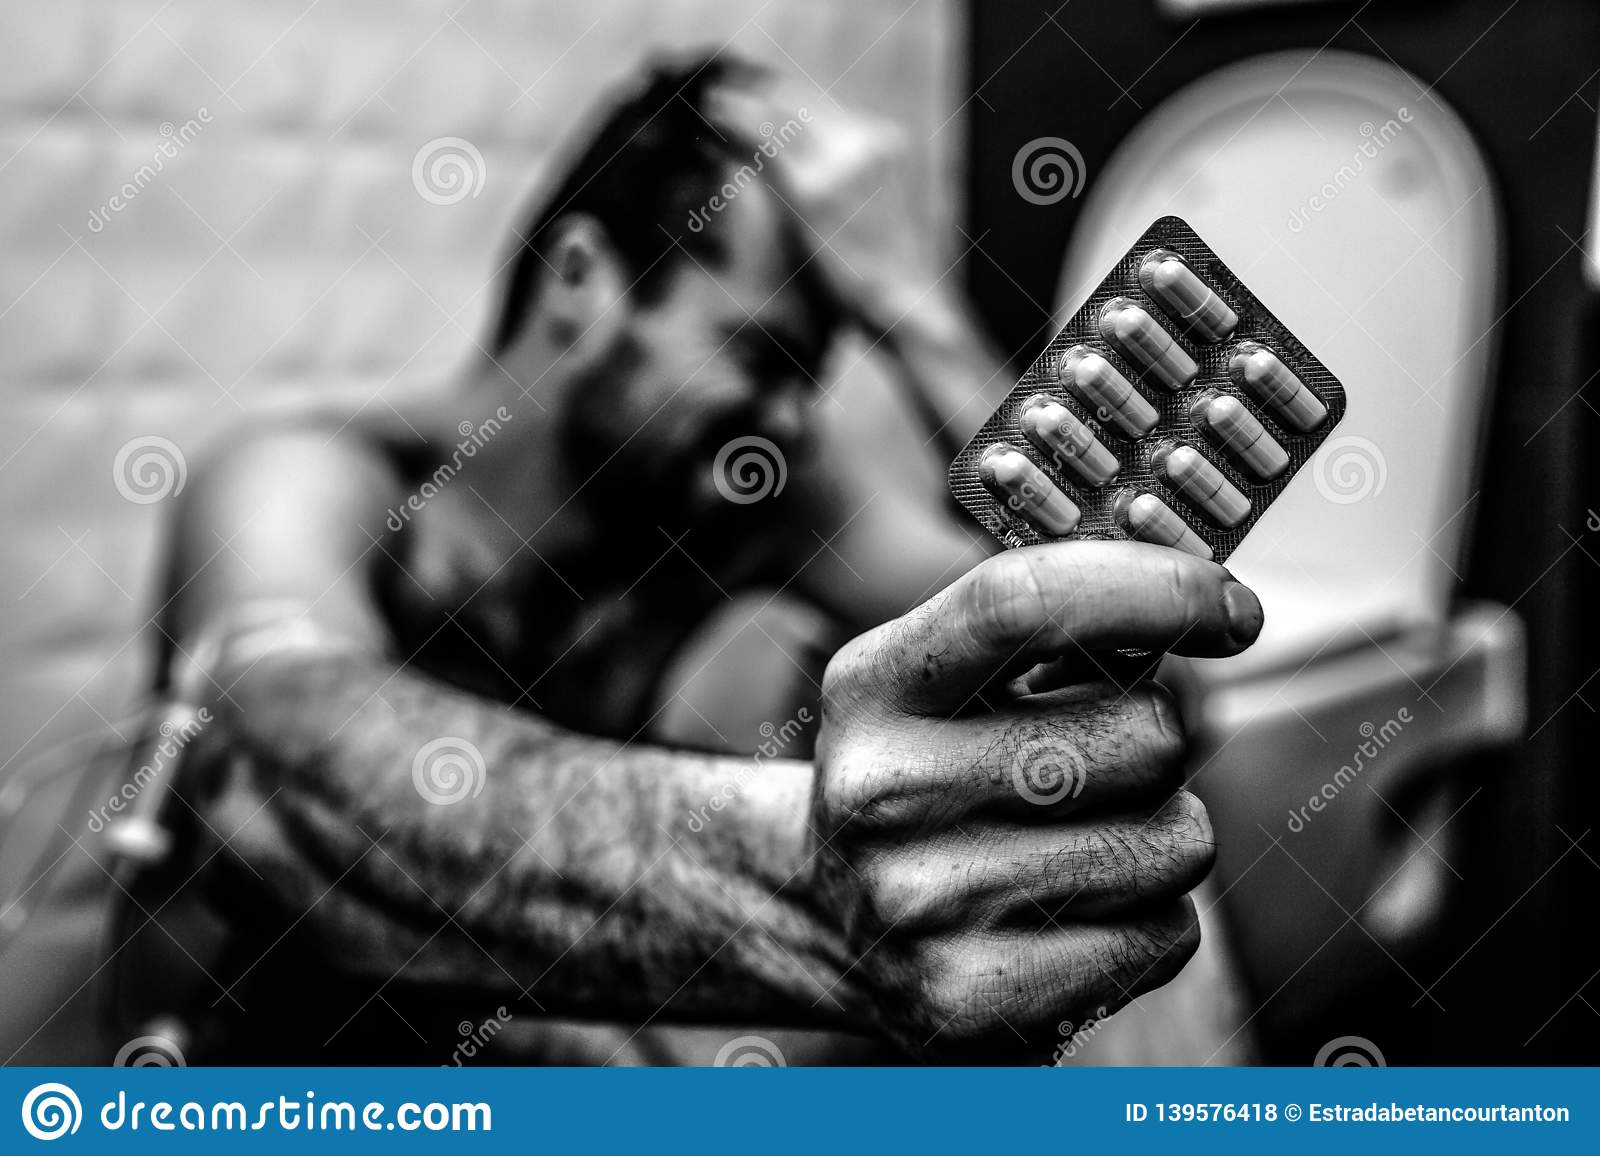 Black and white picture of young man sit on floor in rest room and hold plate of pills. Hand is wrapped with plait for